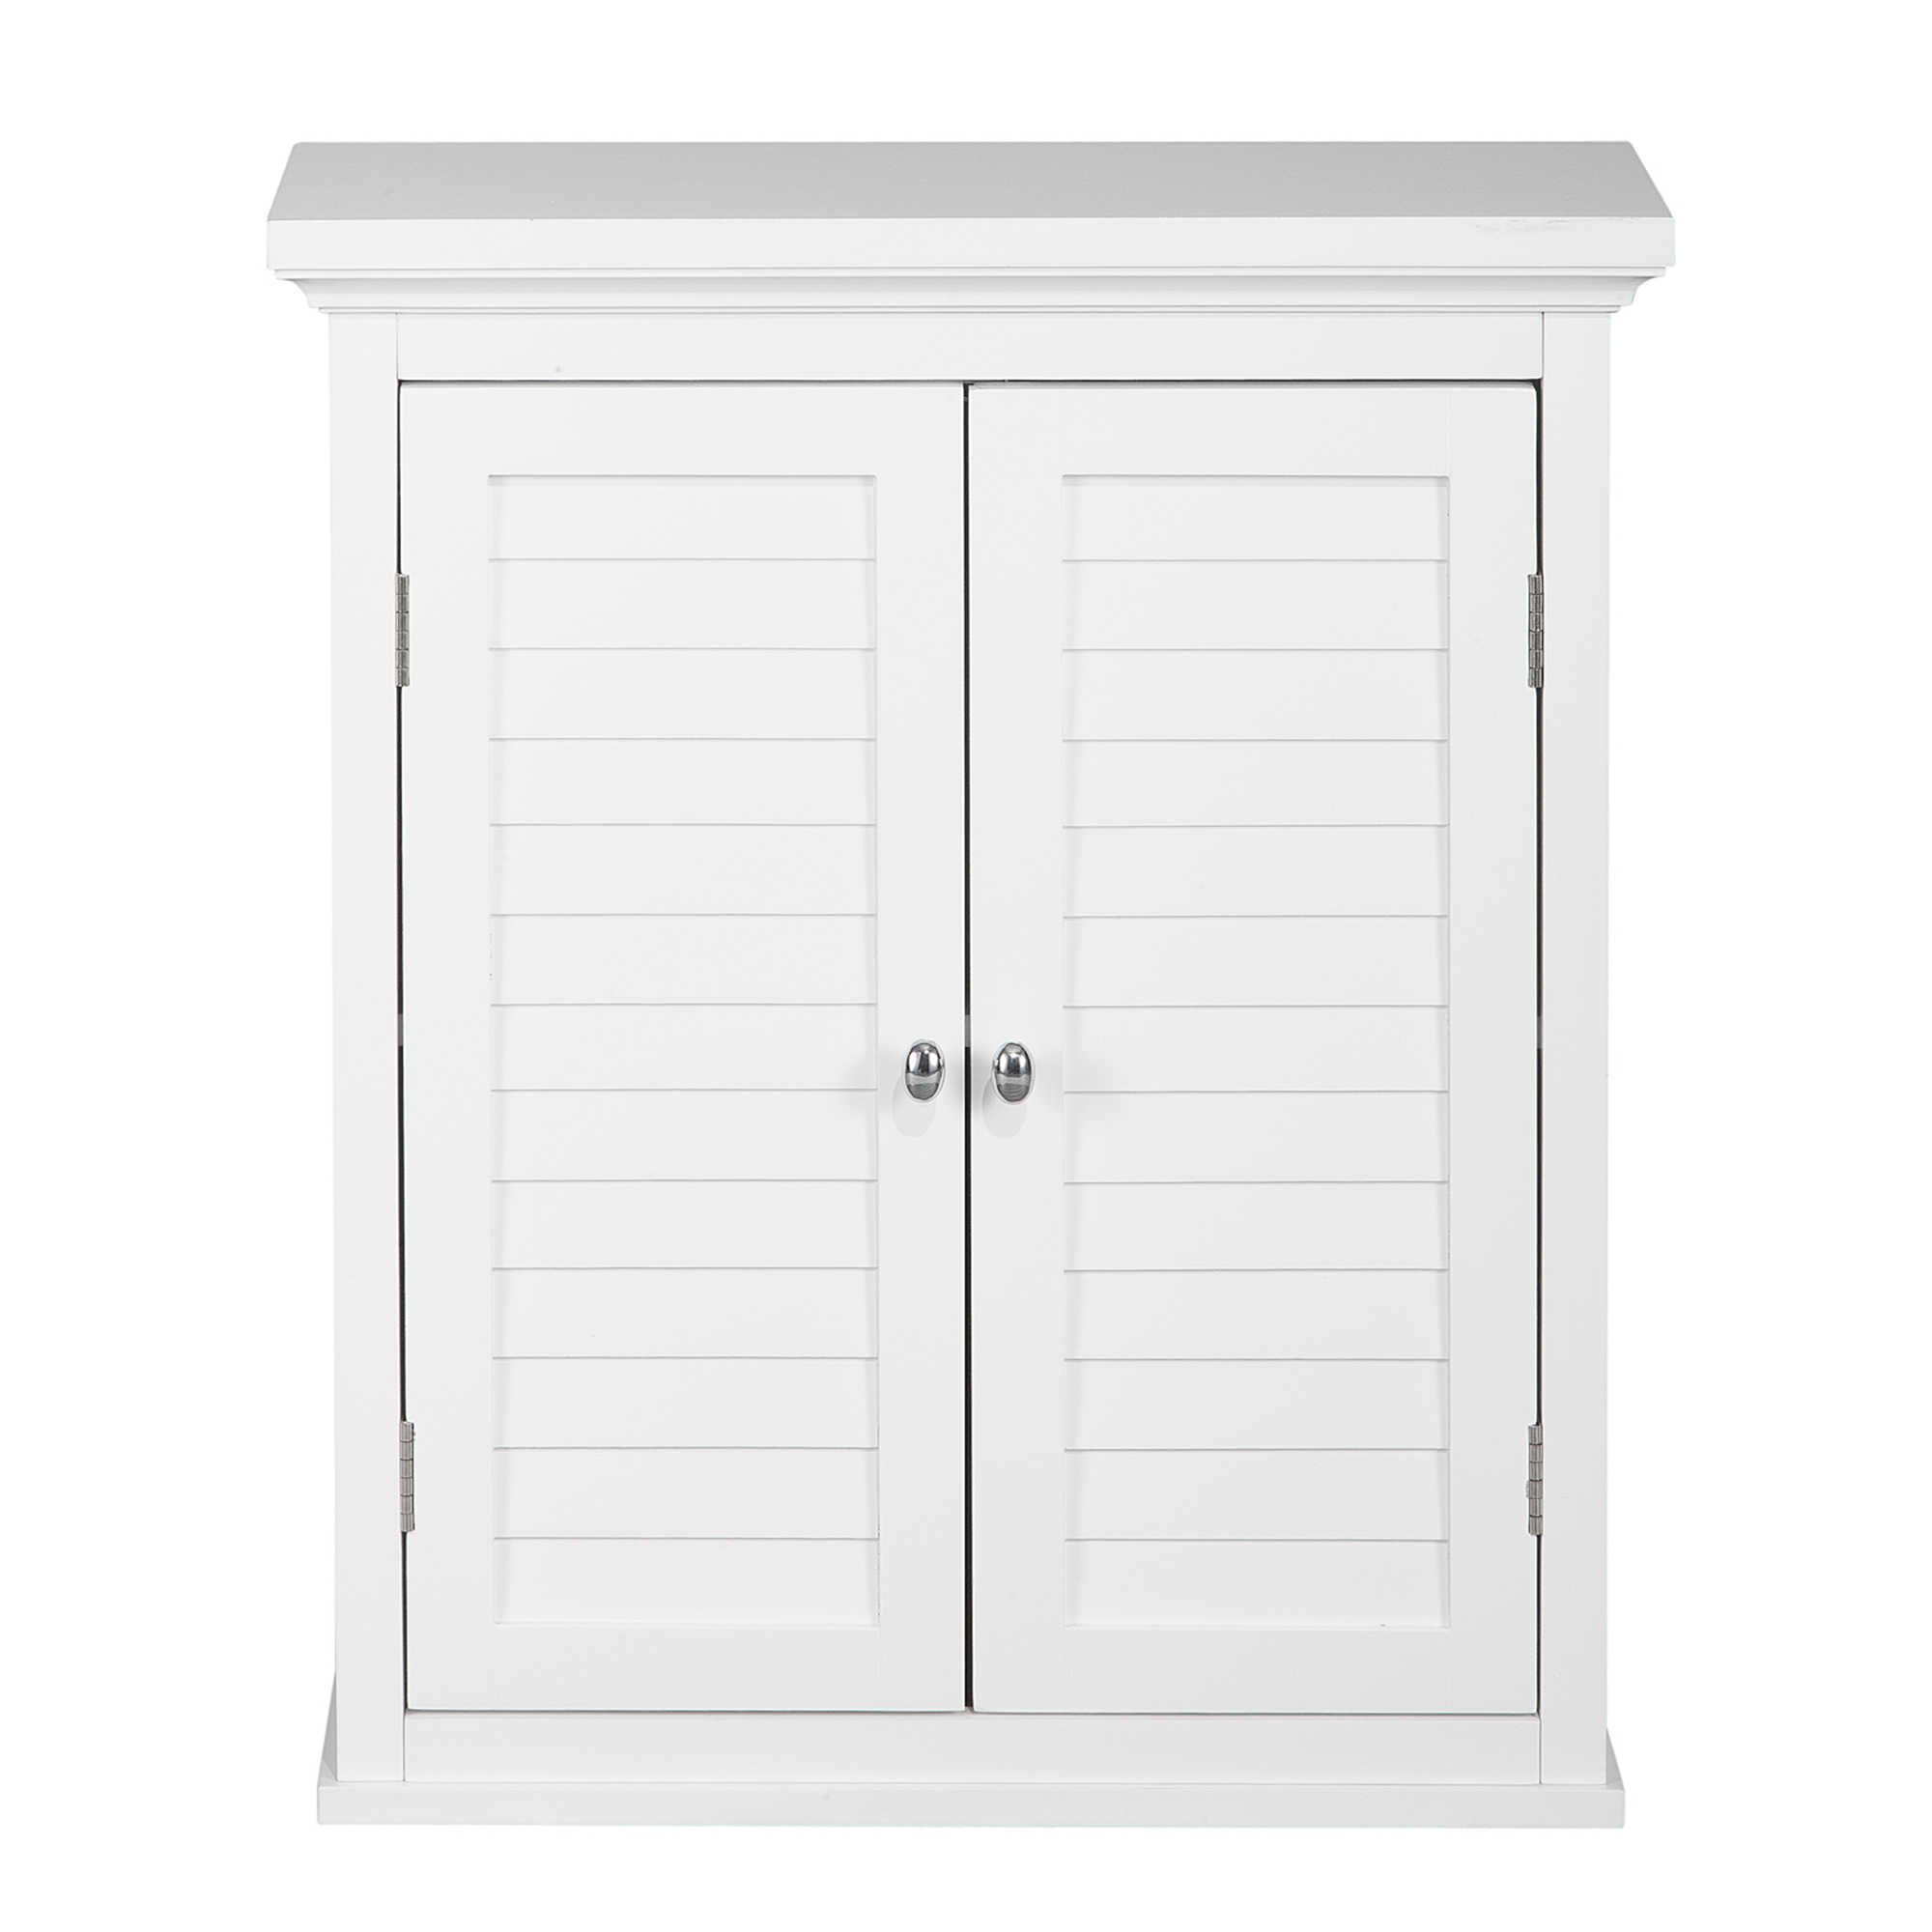 Elegant Home Fashions Neal Collection, Styling and Functionality Wall Cabinet, White